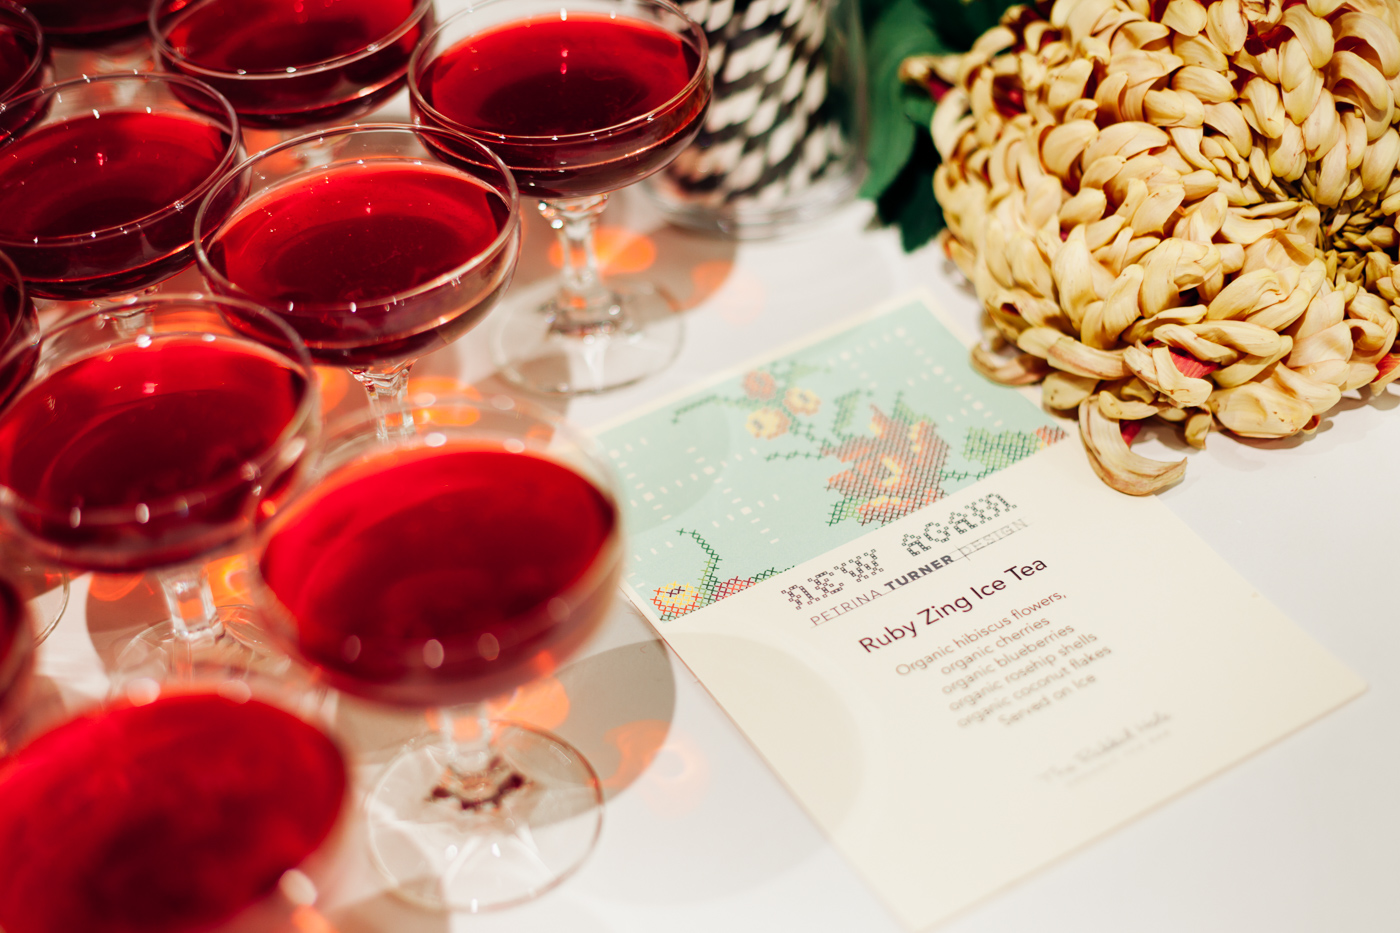 Ruby Zing Iced Tea... The Rabbit Hole |NEW AGAIN by Petrina Turner Design for Designer Rugs | The launch event